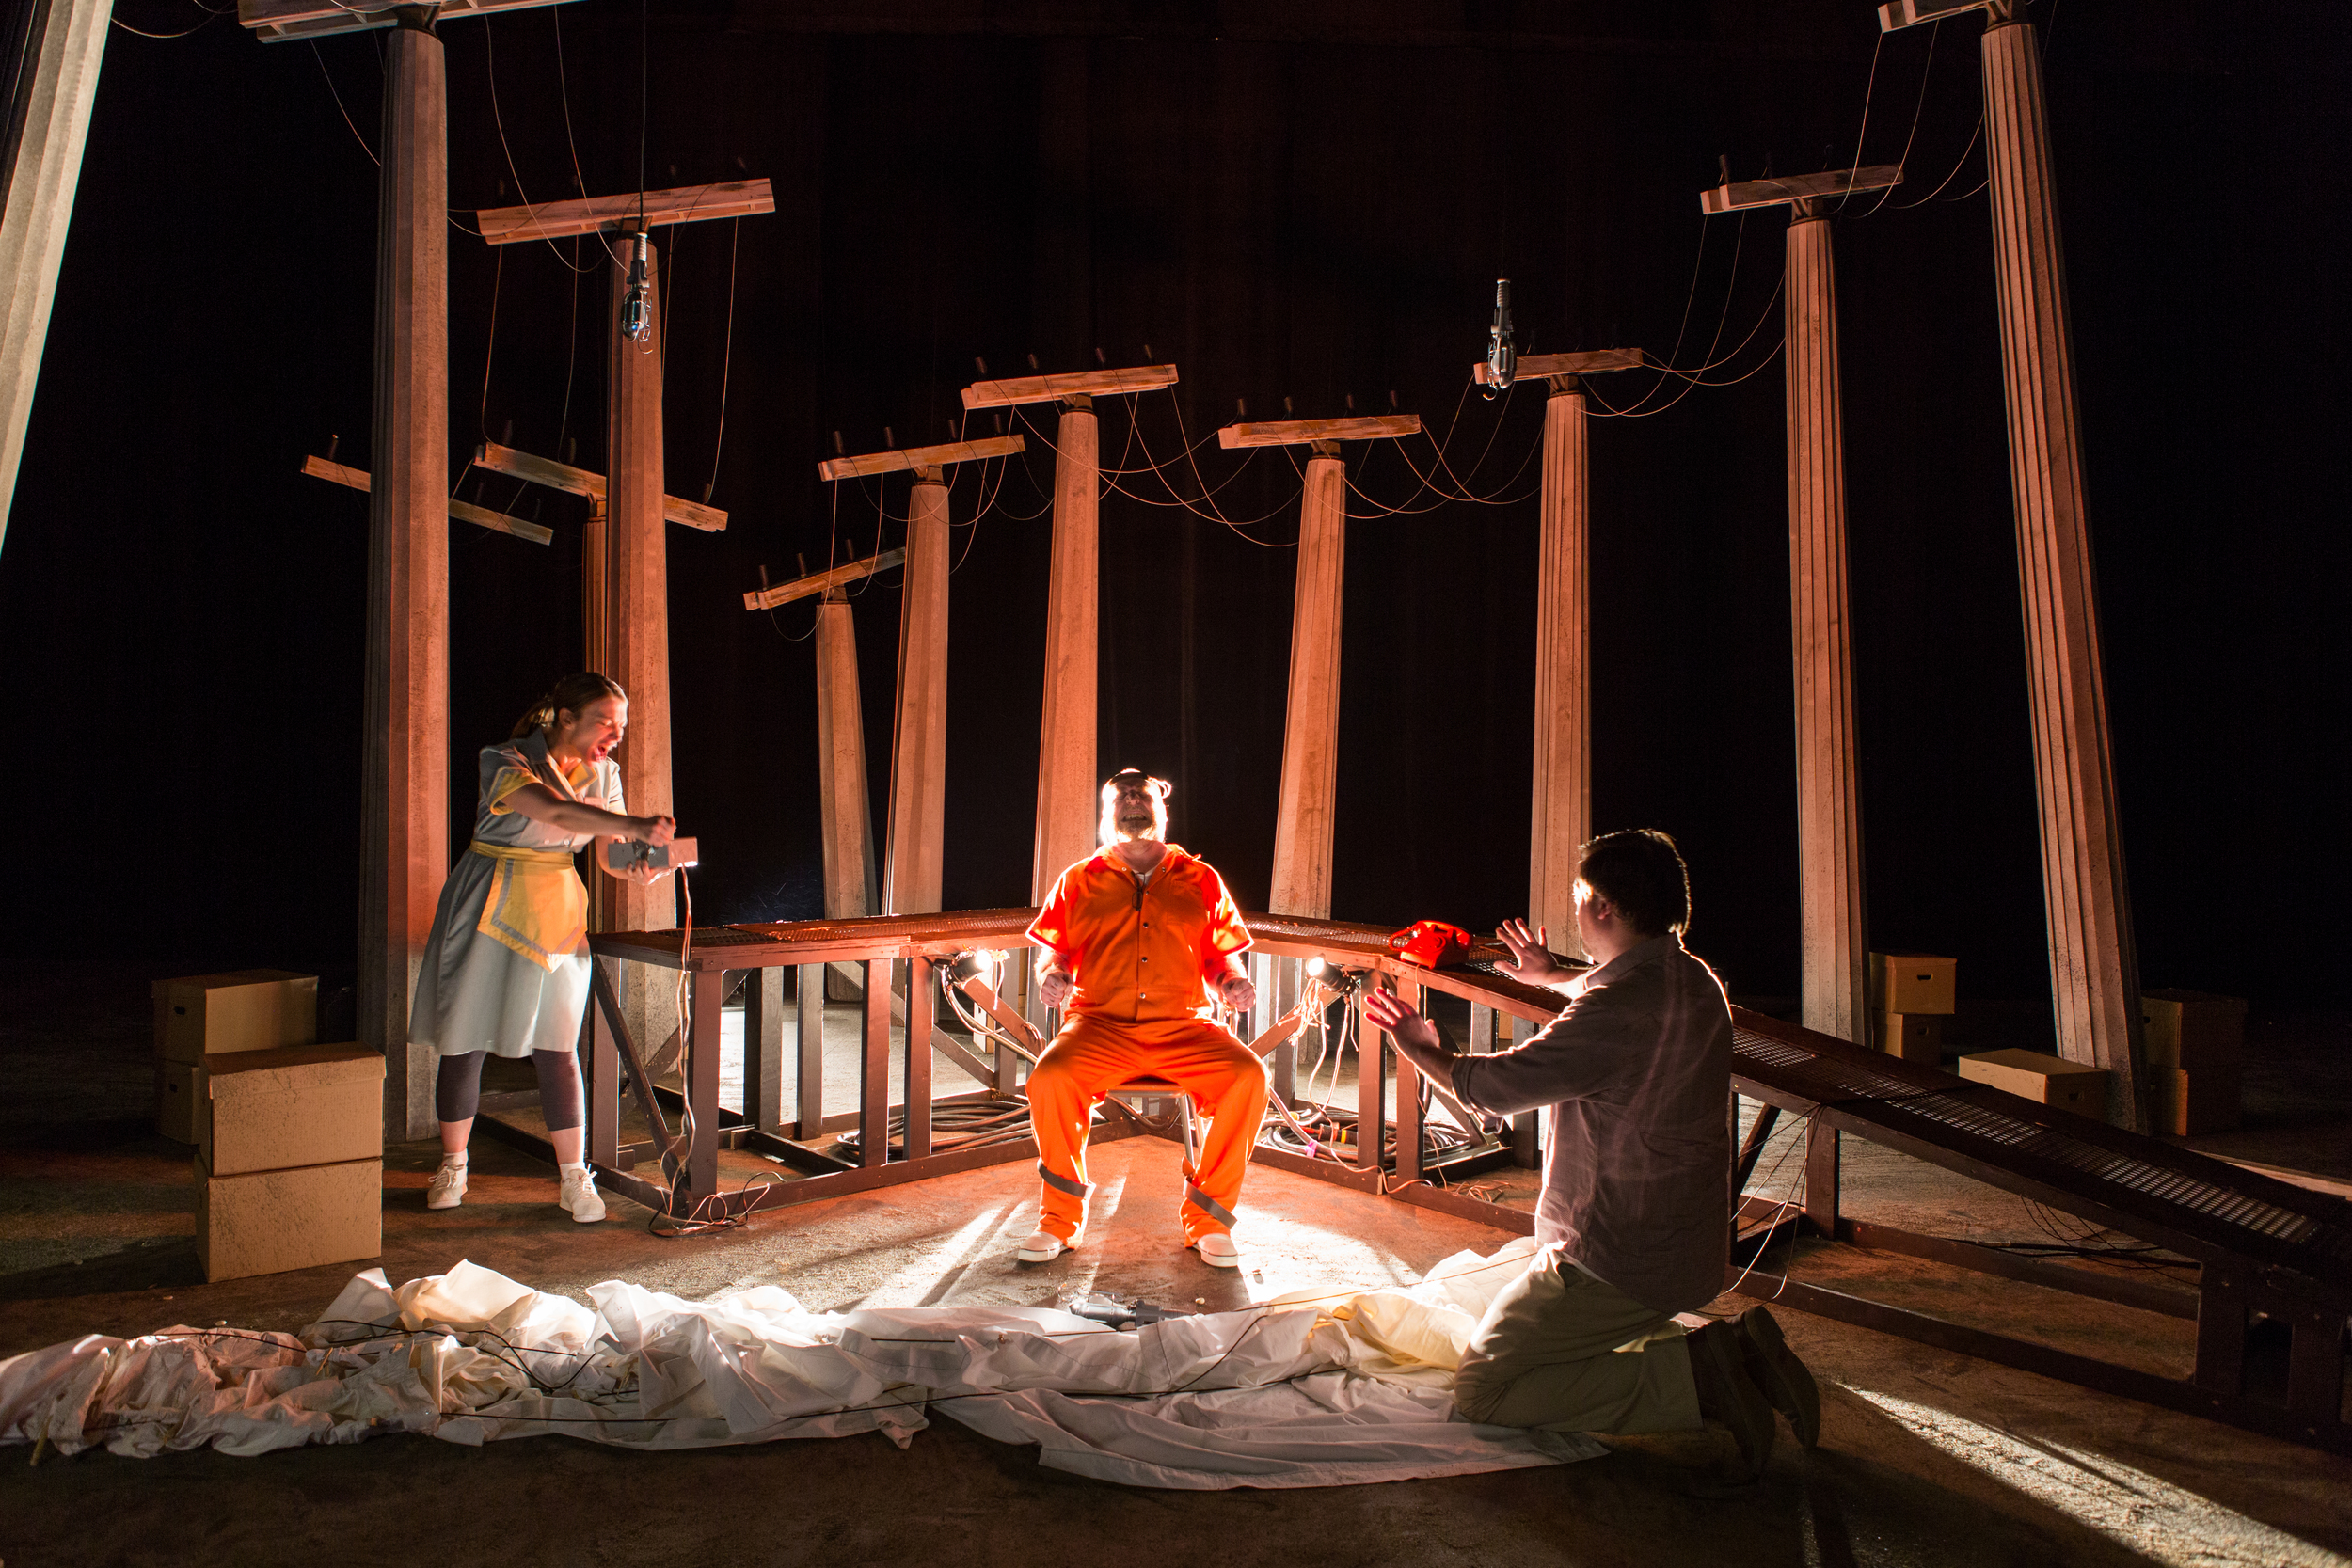 Laws of Thermodynamics - Production Photos - 20150215 - 0047.jpg